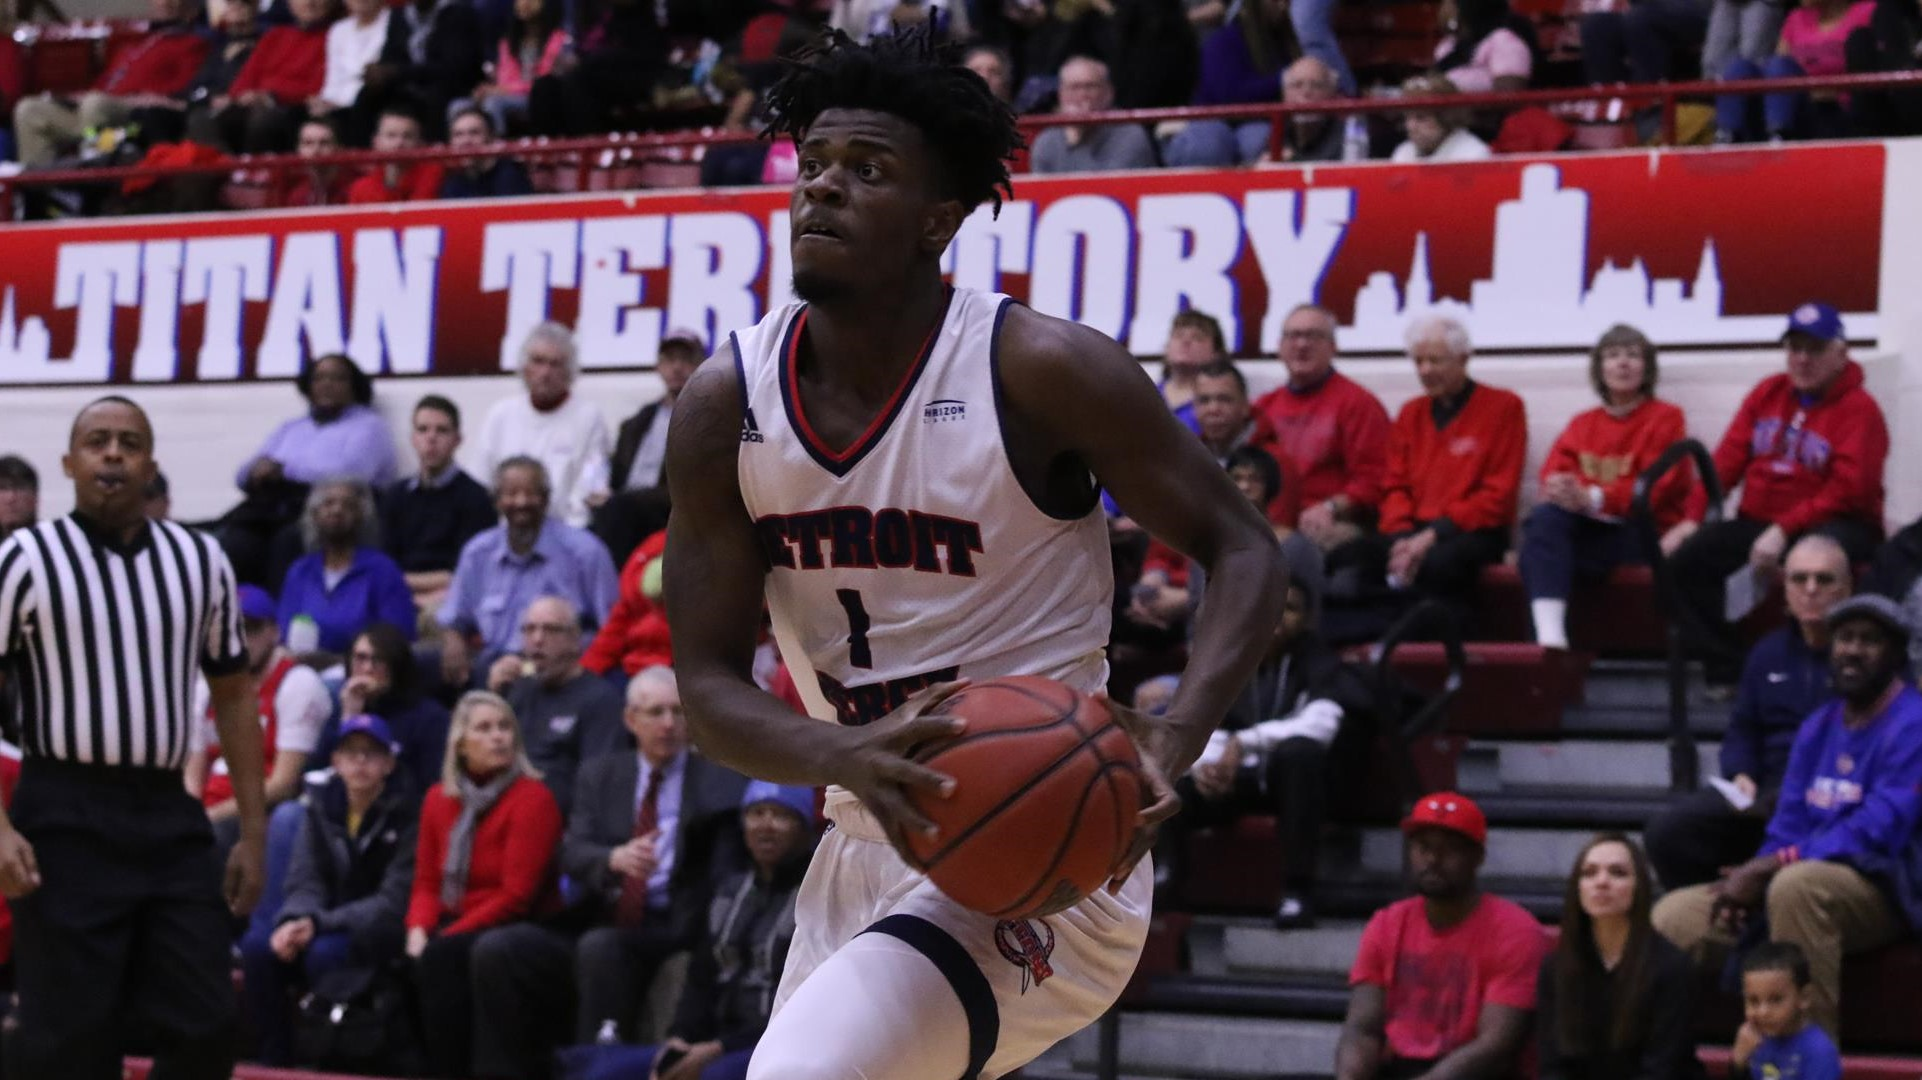 Titans Announce 2019 20 Roster University Of Detroit Mercy